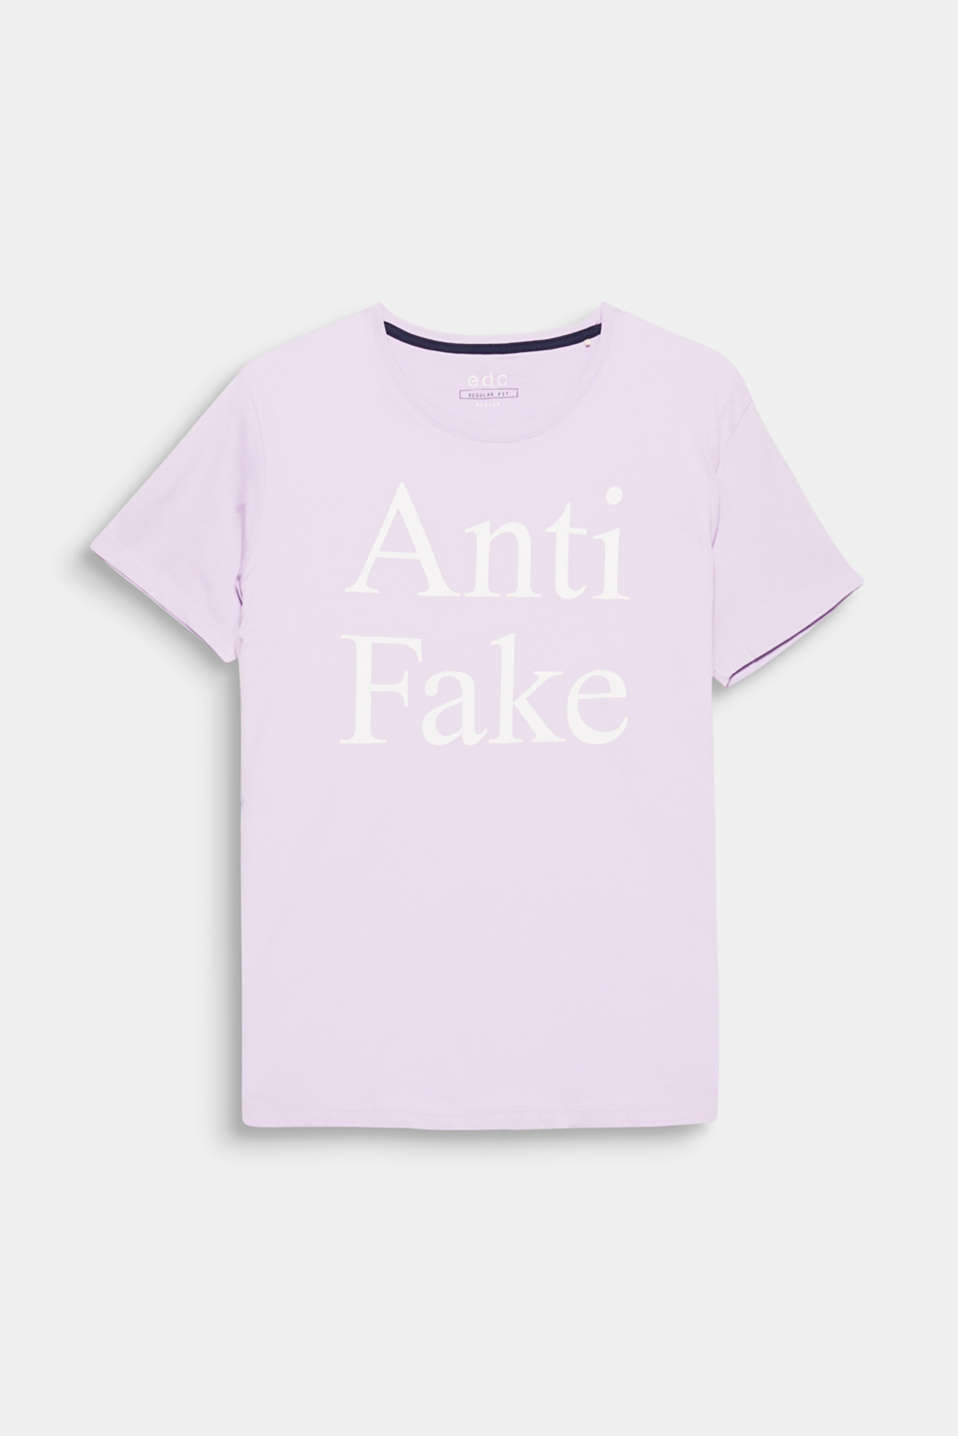 Anti-fake! A print, an ironic statement?! The distinctive lettering makes this T-shirt a unique style.